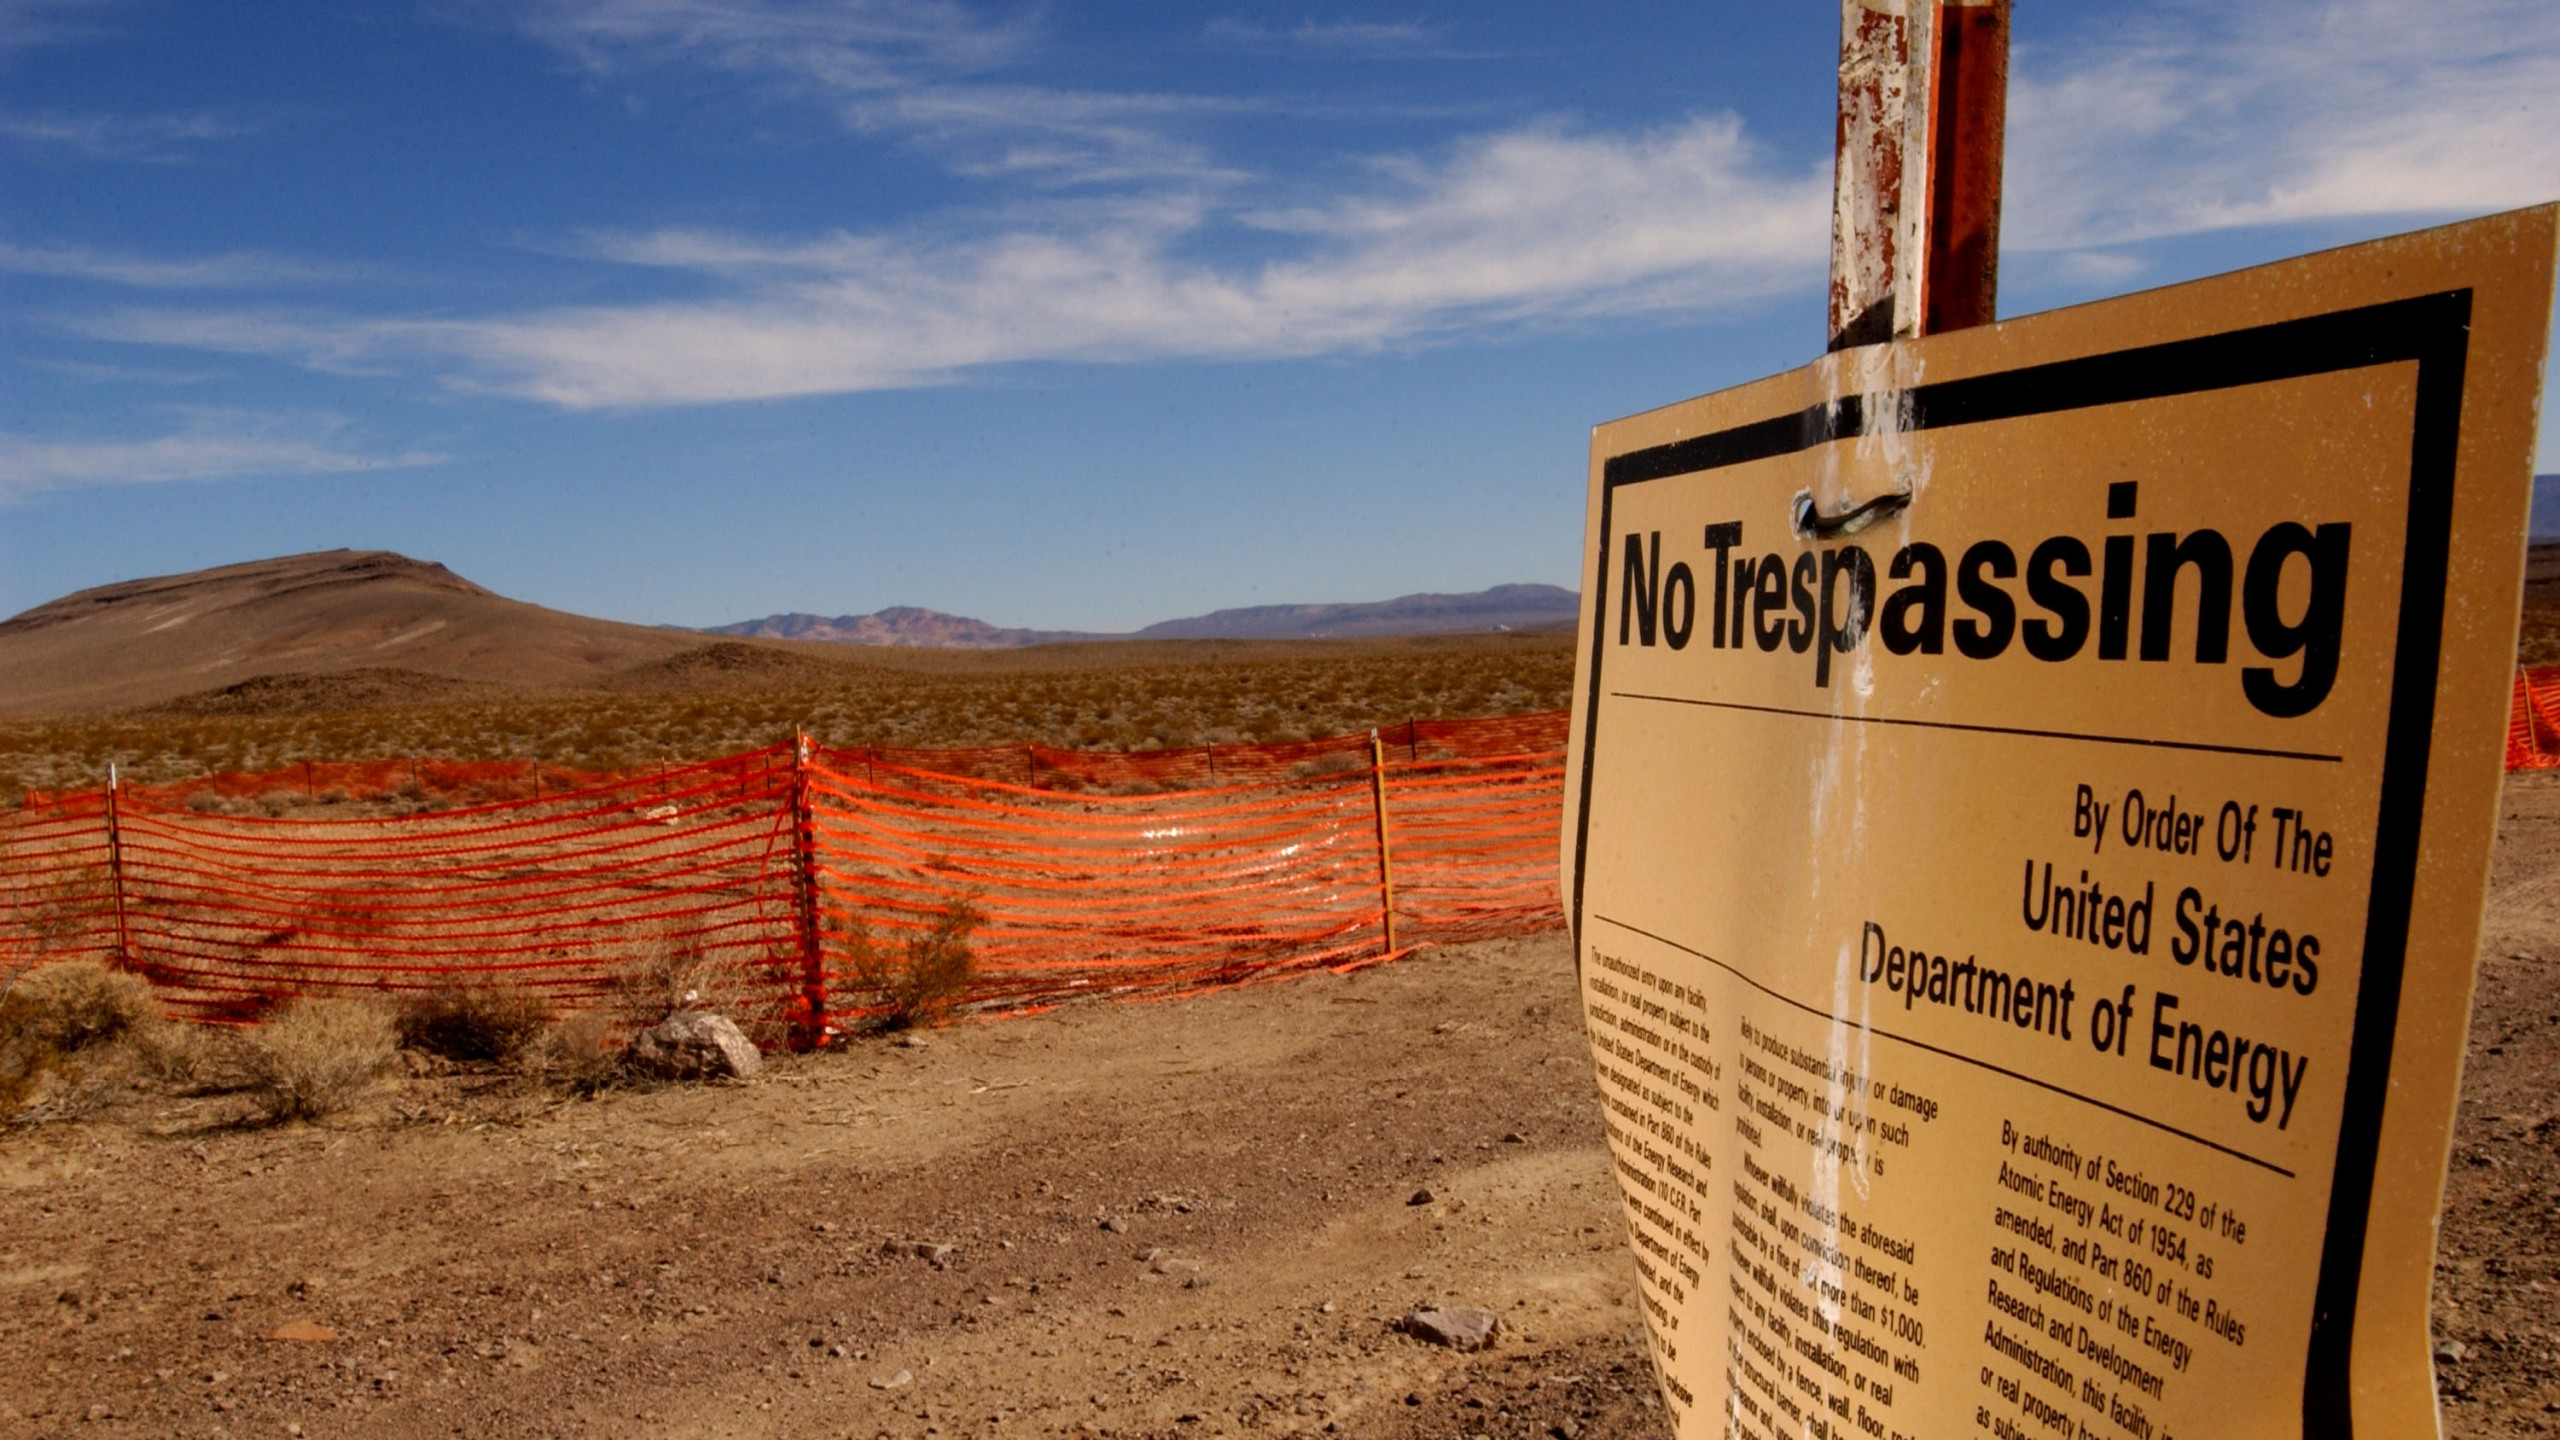 A warns people to stay away from the designated nuclear waste dump site of Yucca Mountain on Feb. 7, 2002, at Nellis Air Force Base. (Credit: David McNew/Getty Images)